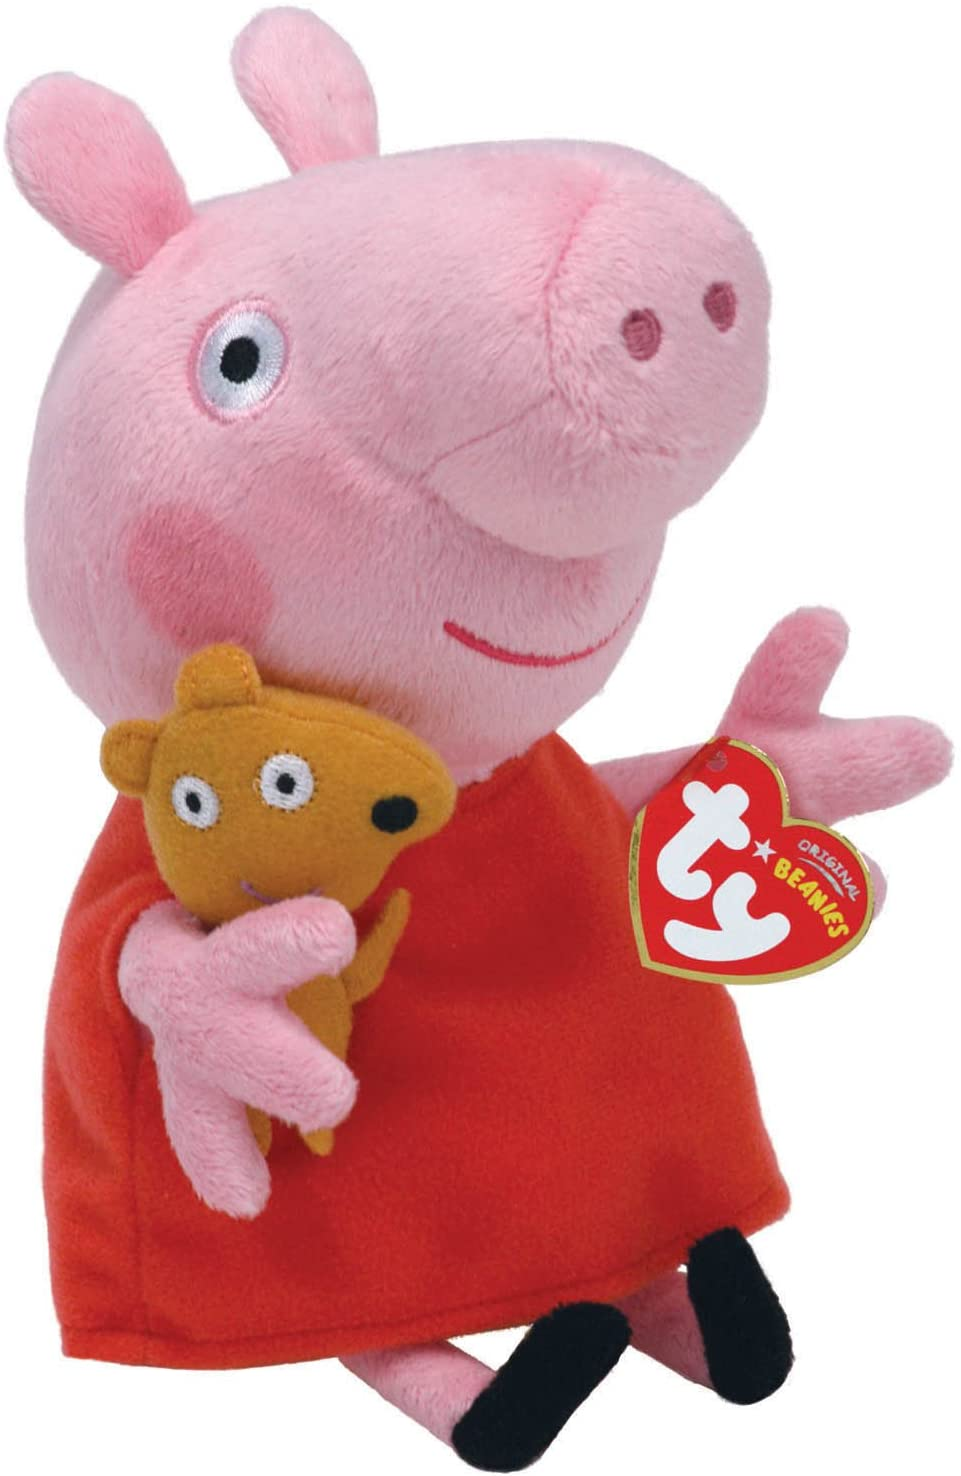 Ty  Peppa Pig Beanie  The Bubble Room Toy Store Skerries Dublin